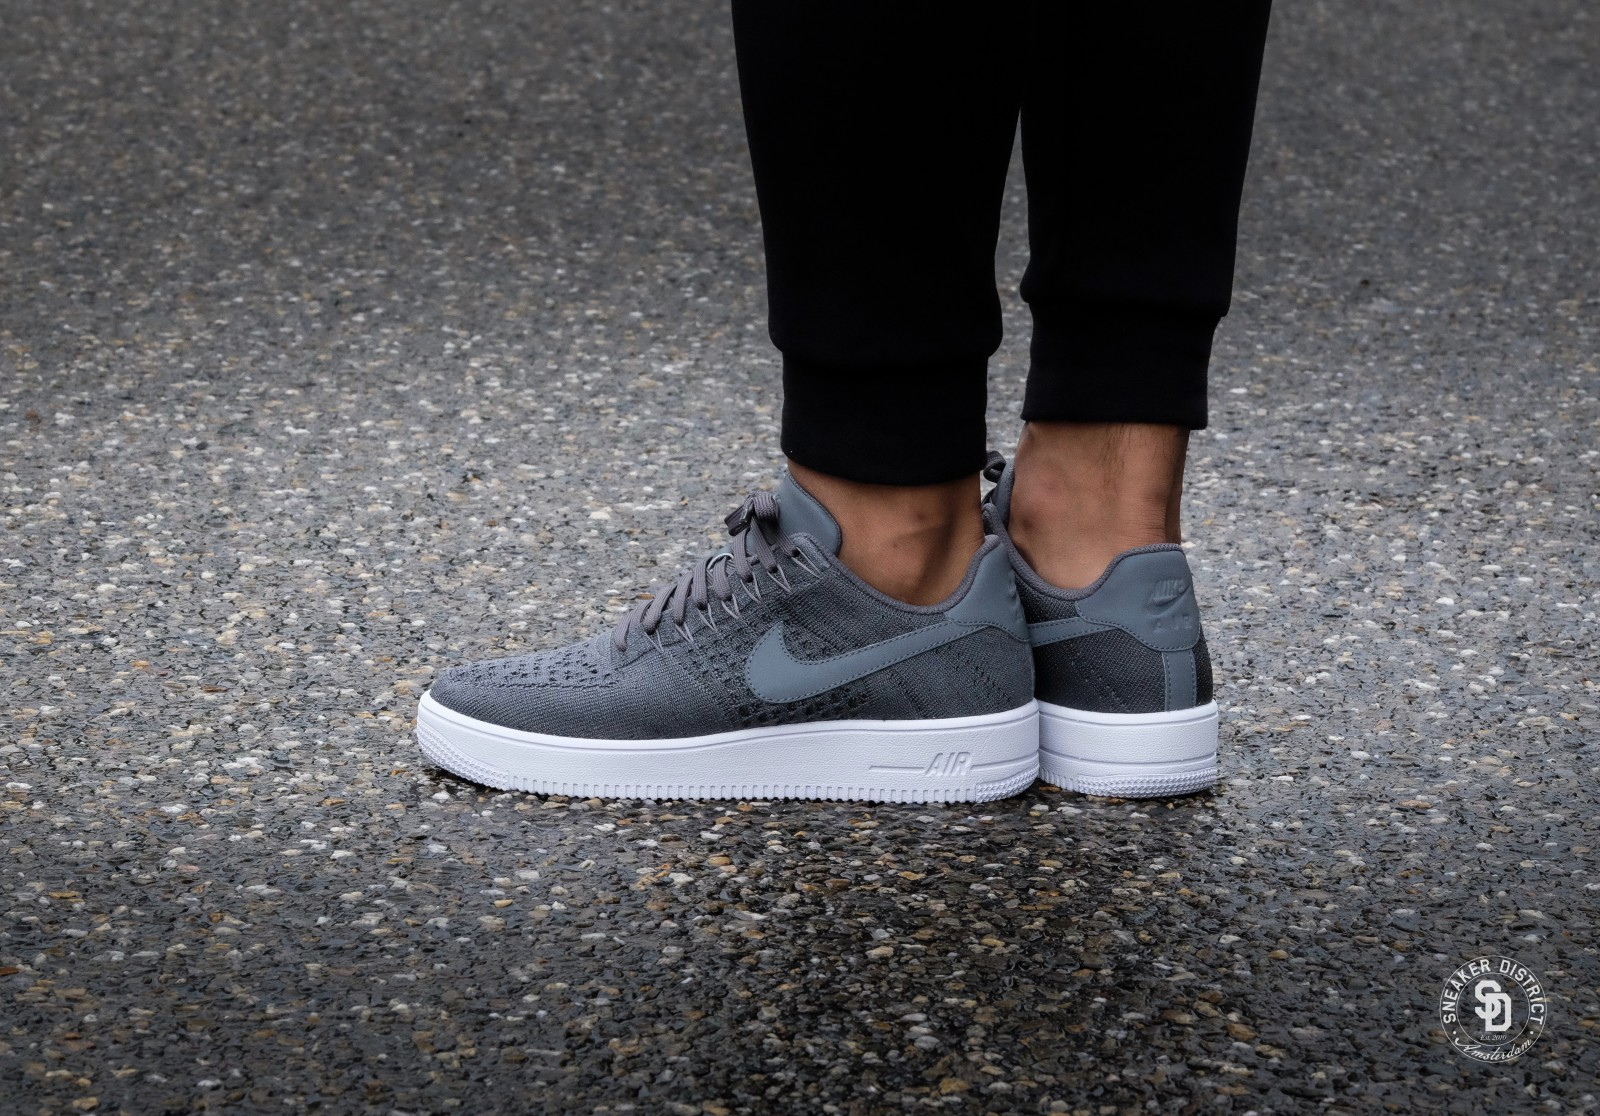 Nike Air Force 1 Flyknit Low Black